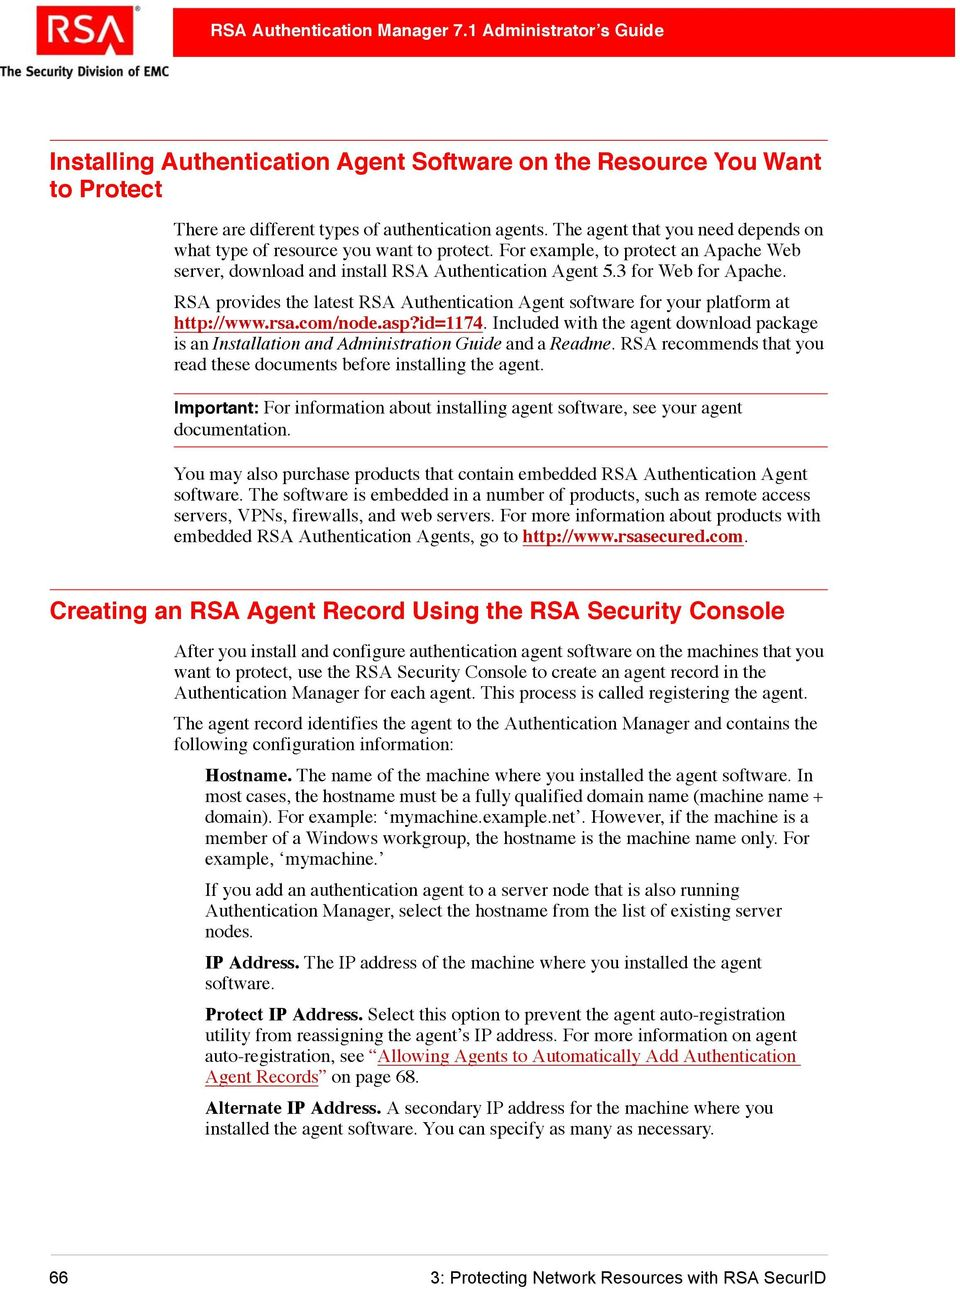 RSA provides the latest RSA Authentication Agent software for your platform at http://www.rsa.com/node.asp?id=1174.